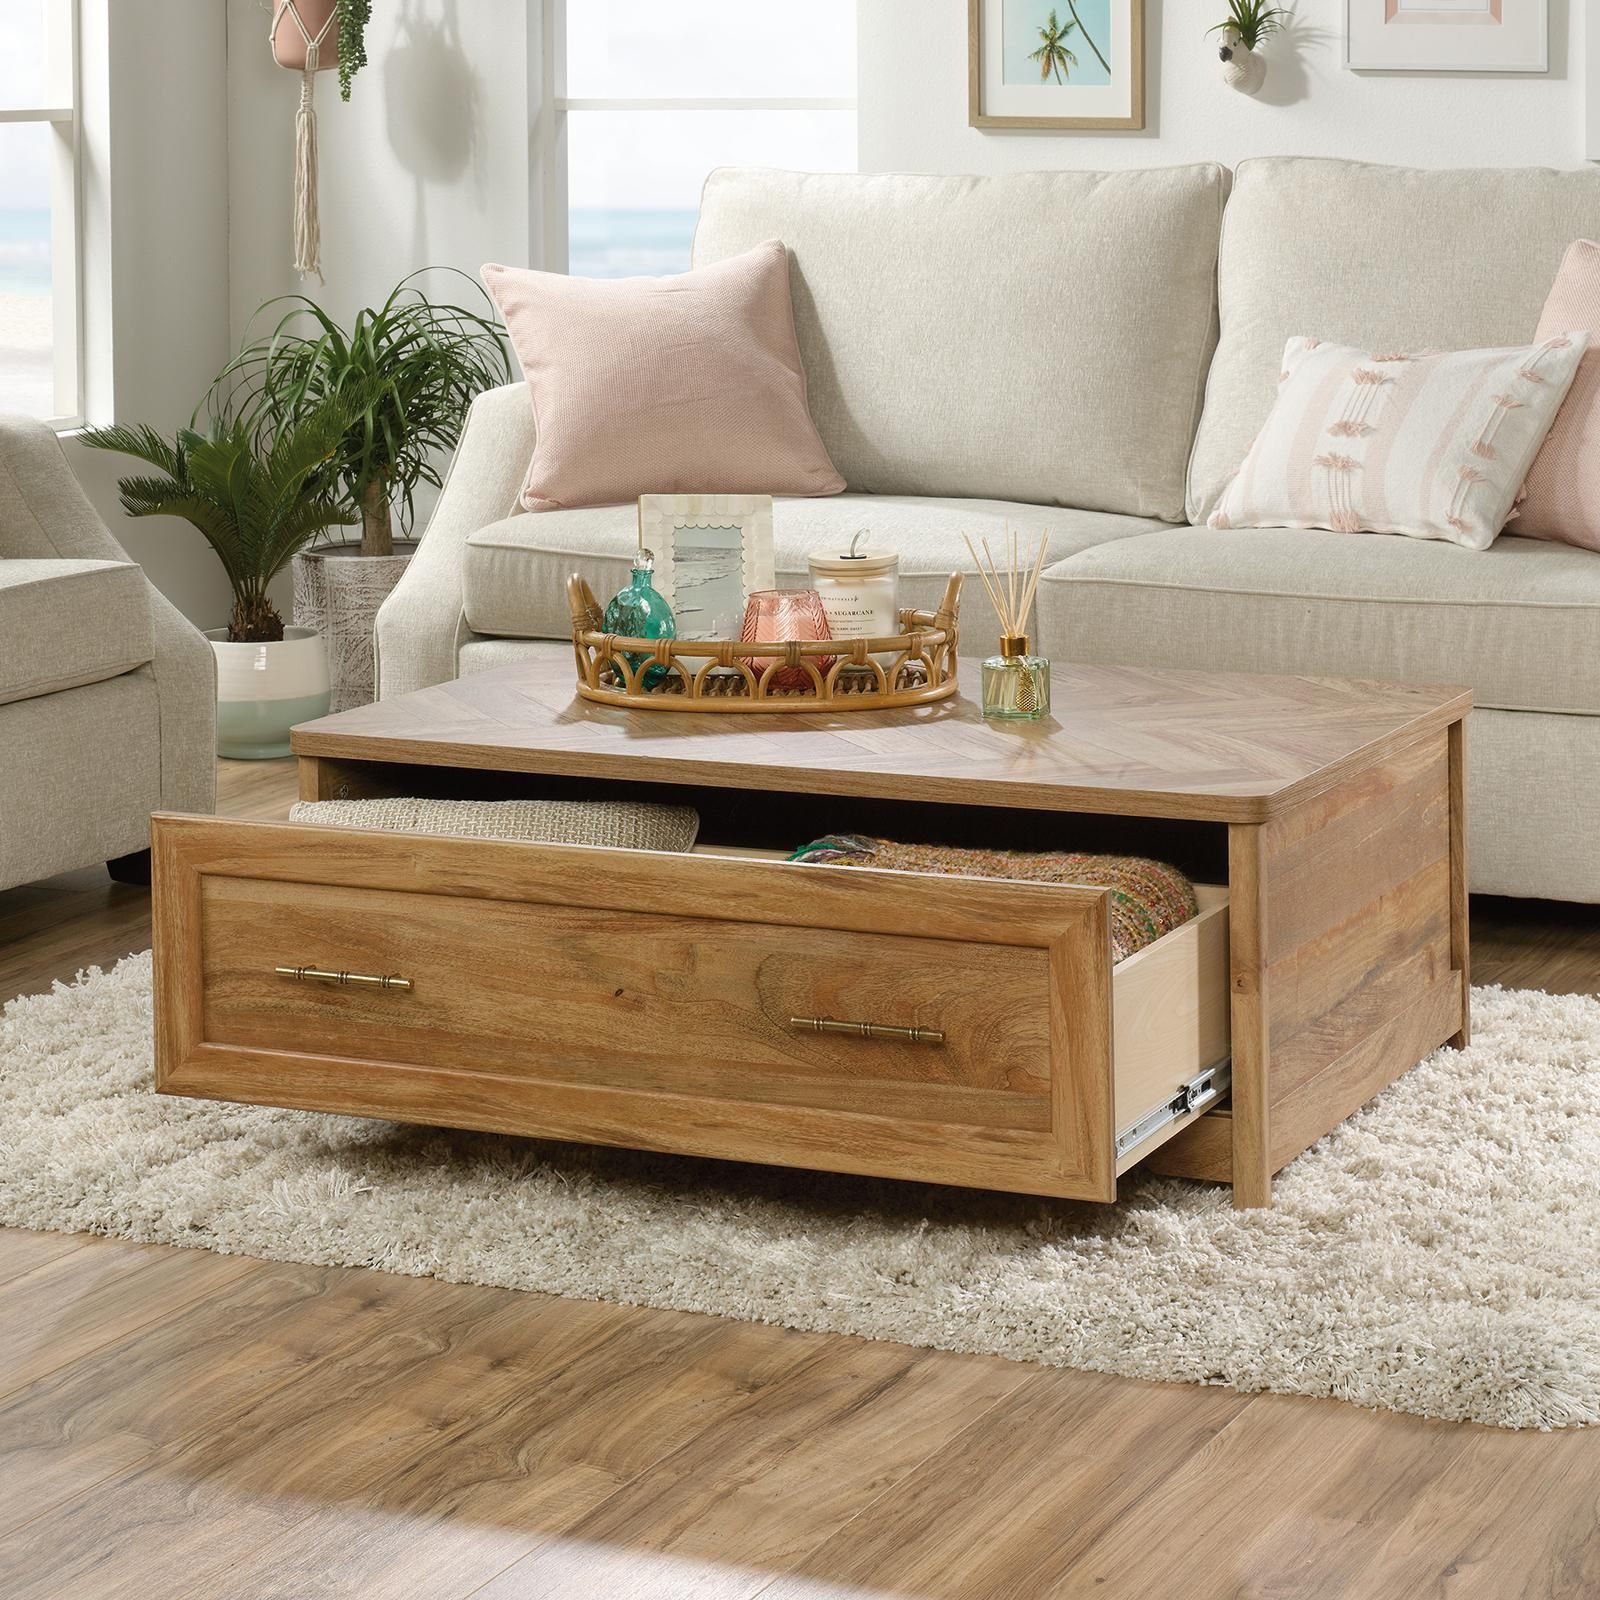 Sauder Coral Cape Coffee Table In 2021 Coffee Table Coffee Table With Drawers Decorating Coffee Tables [ 1600 x 1600 Pixel ]